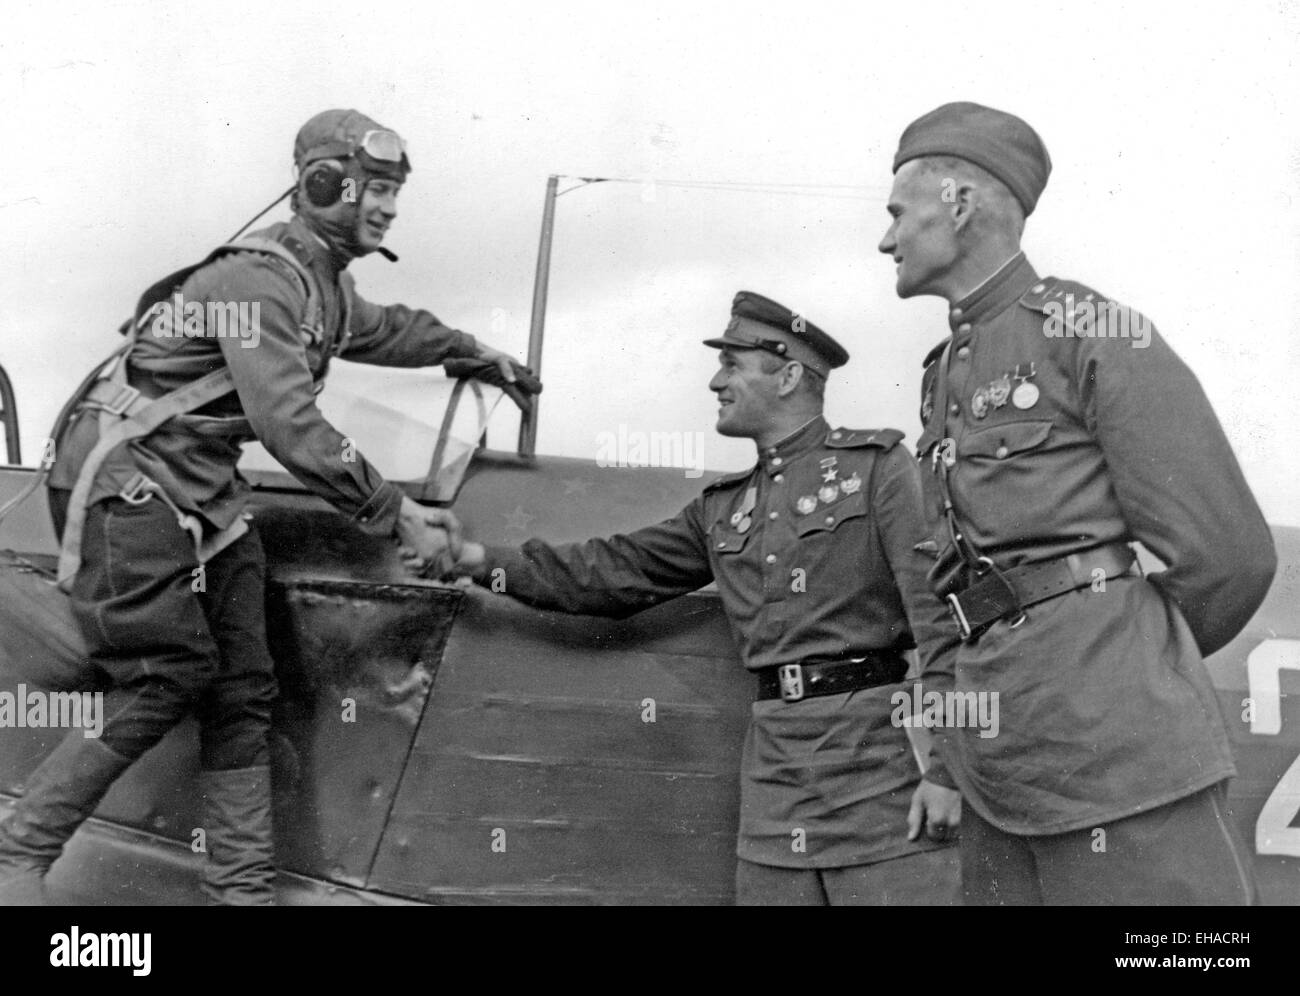 """SIEGE OF LENINGRAD 1941 Original caption: """"Fighter pilot Captain Mochalov being greeted by his friends on returning from a successful sorties in which he shot down his thirteenth enemy plane"""" Stock Photo"""